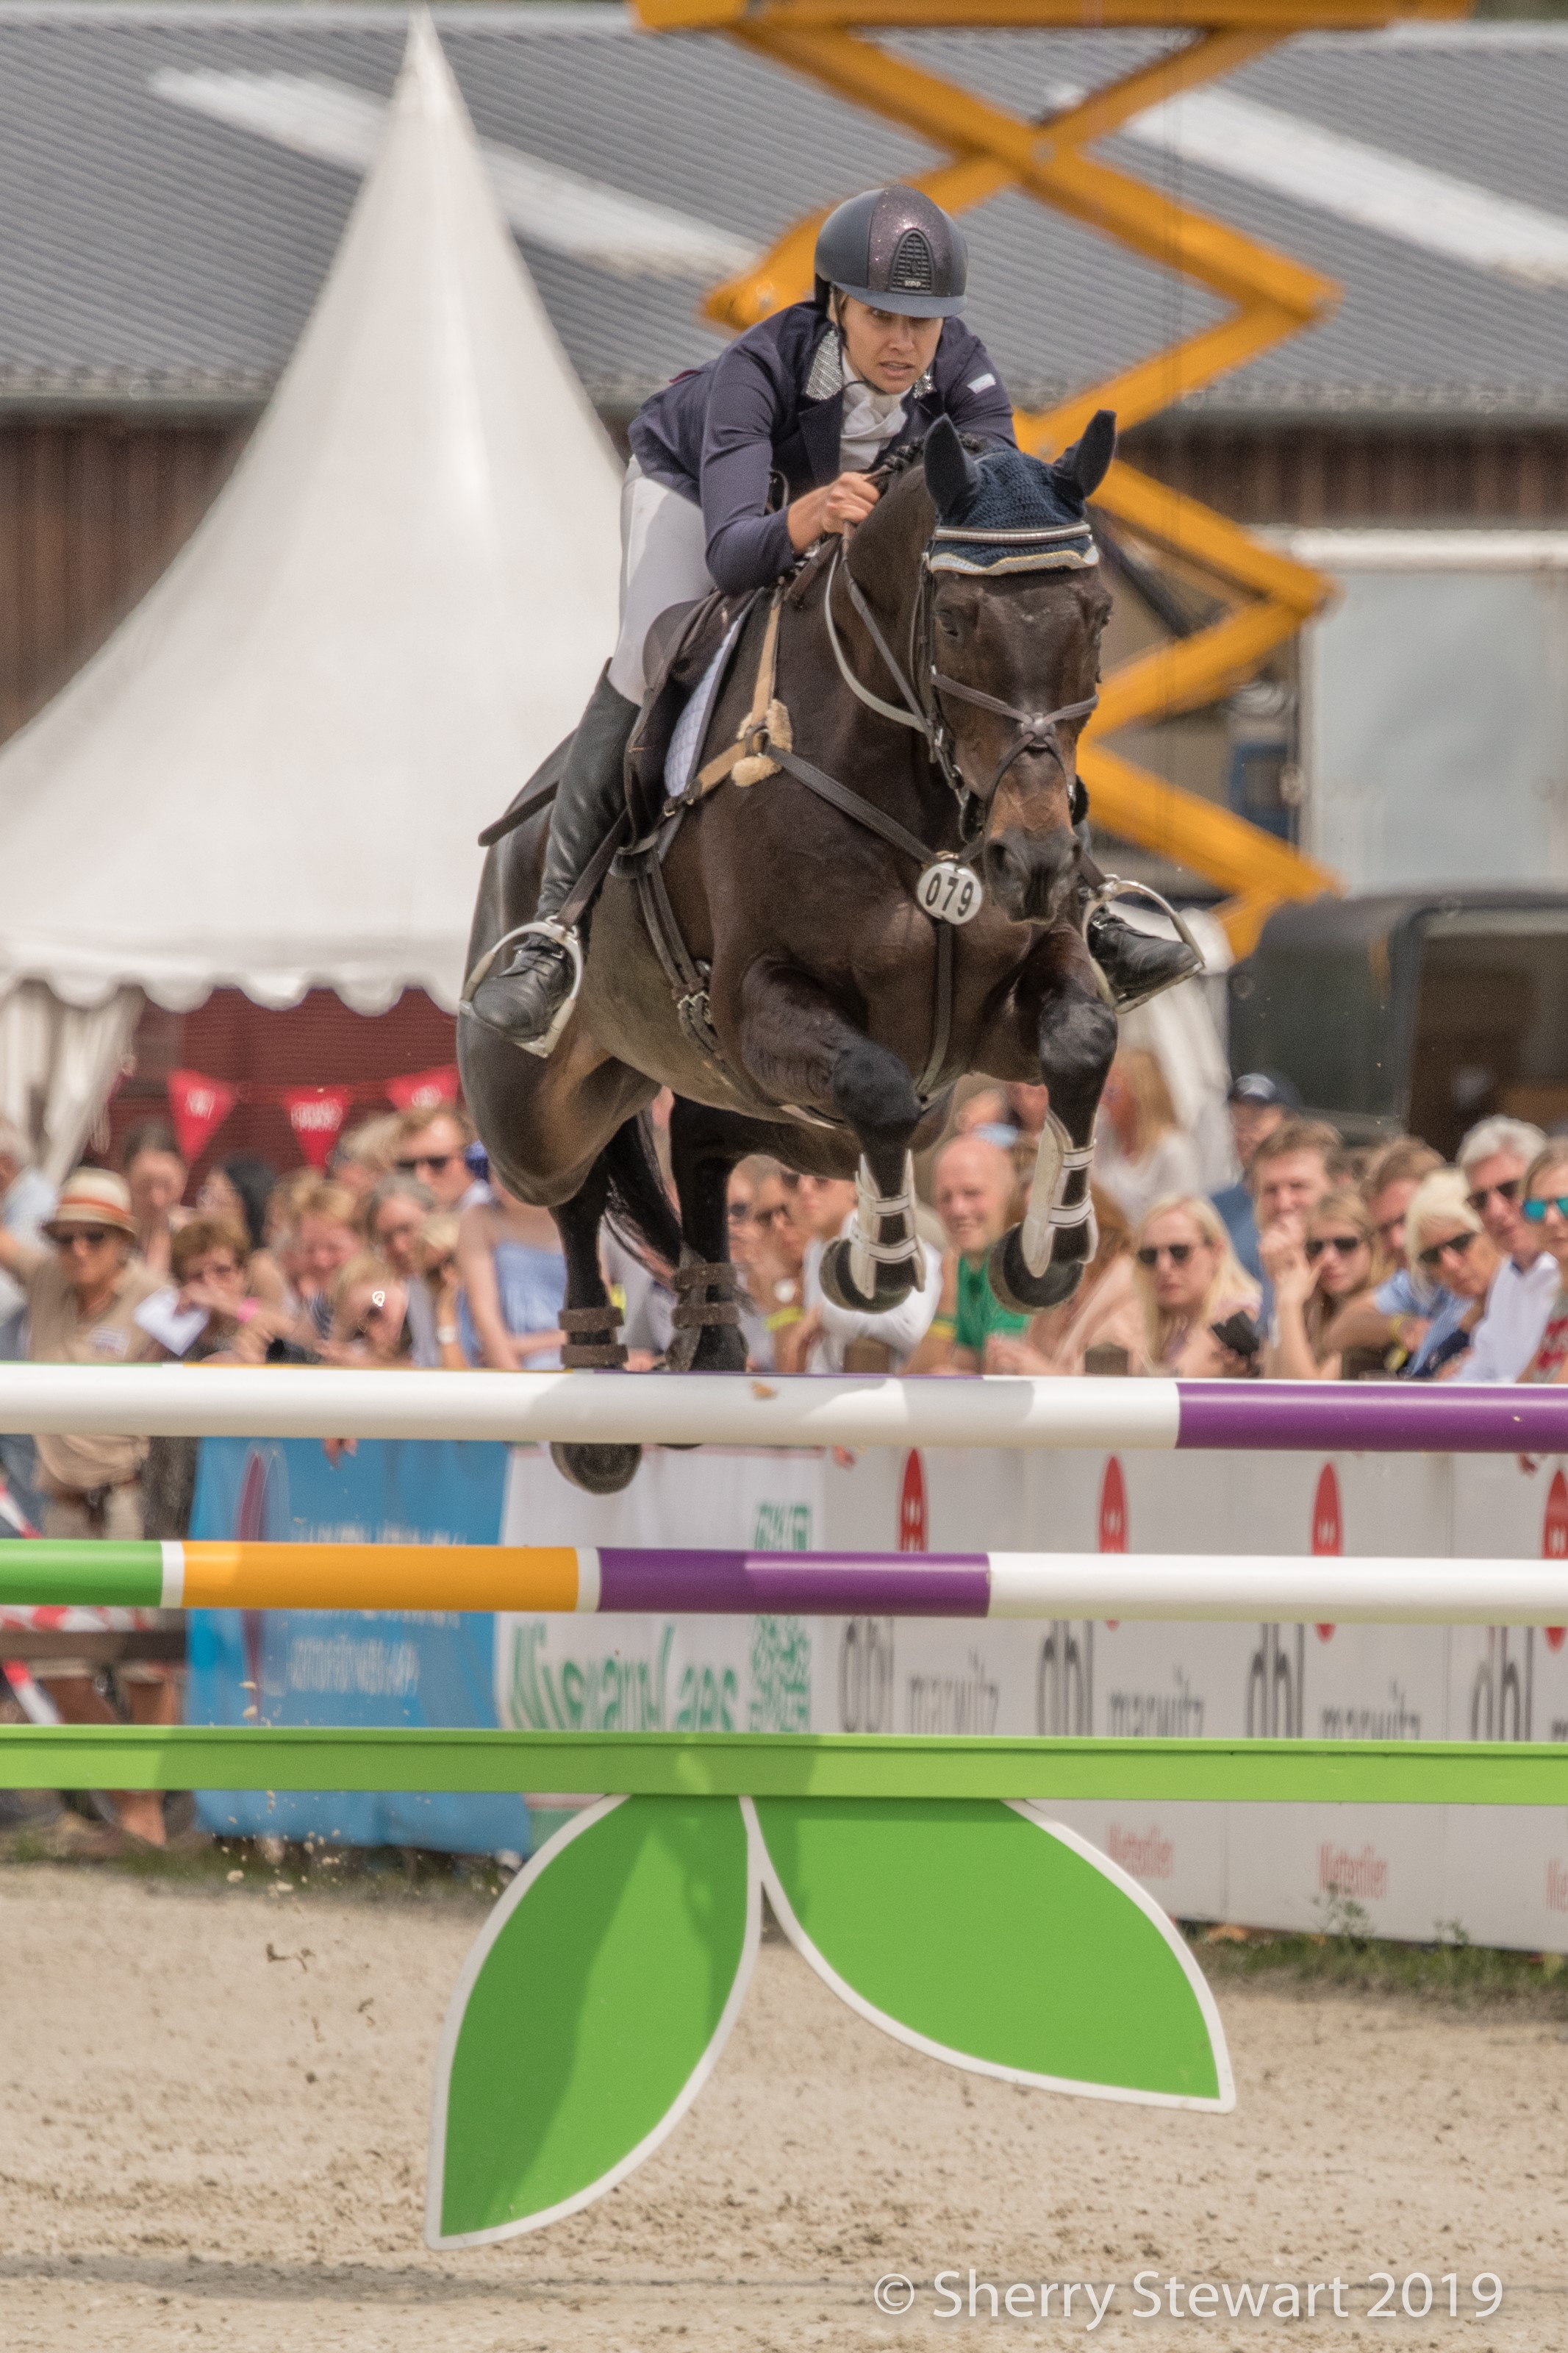 A clear round in show jumping saw Frankie and Chat finish in 4th place and get their first 5* under their belts.